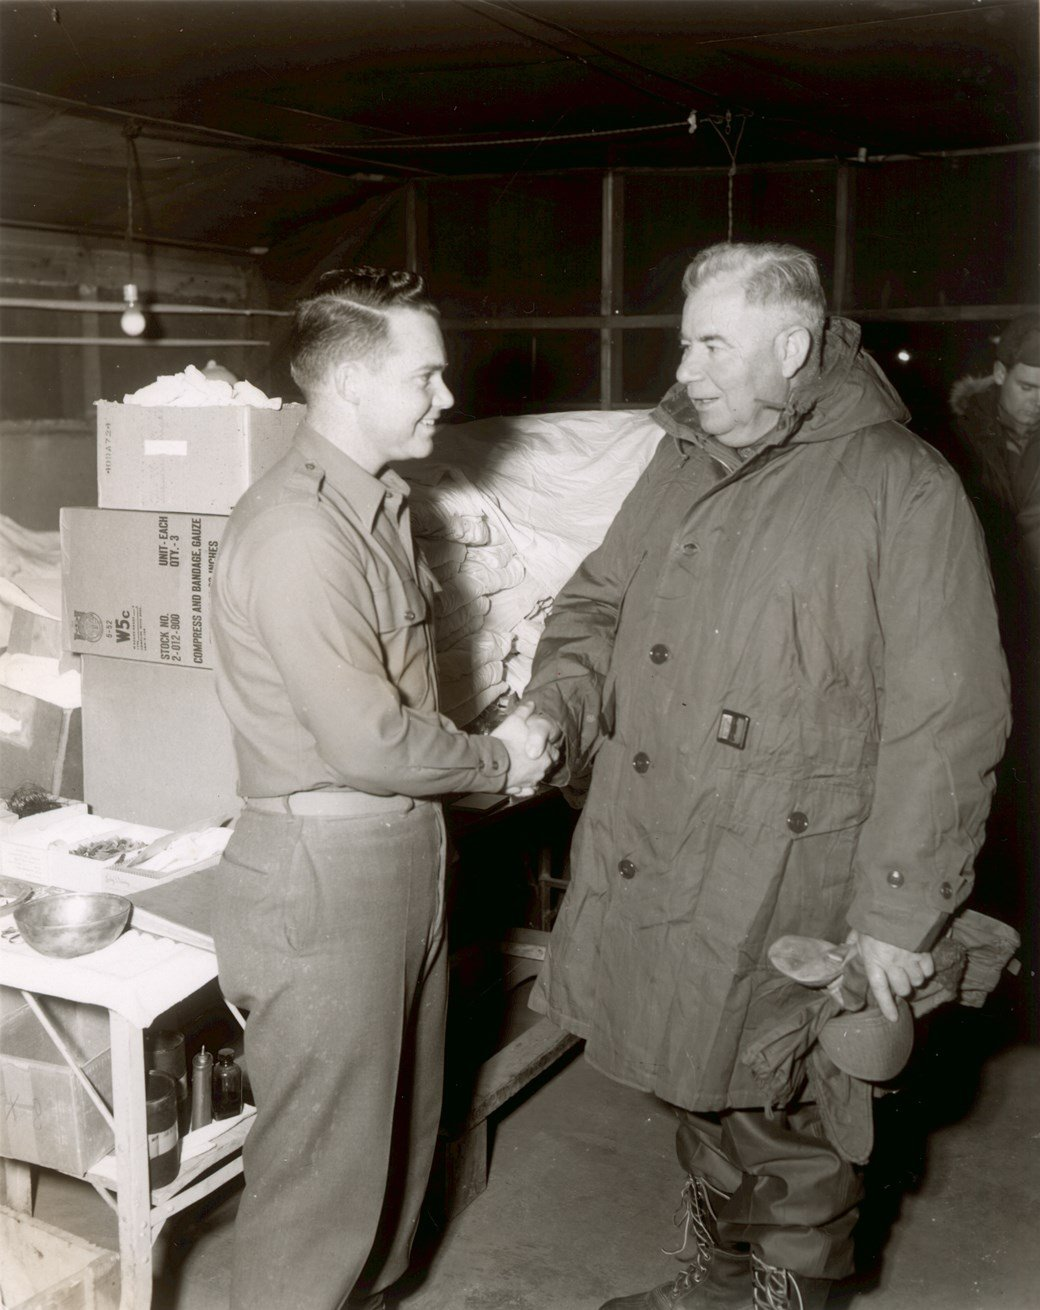 Mac with soldier in Korea